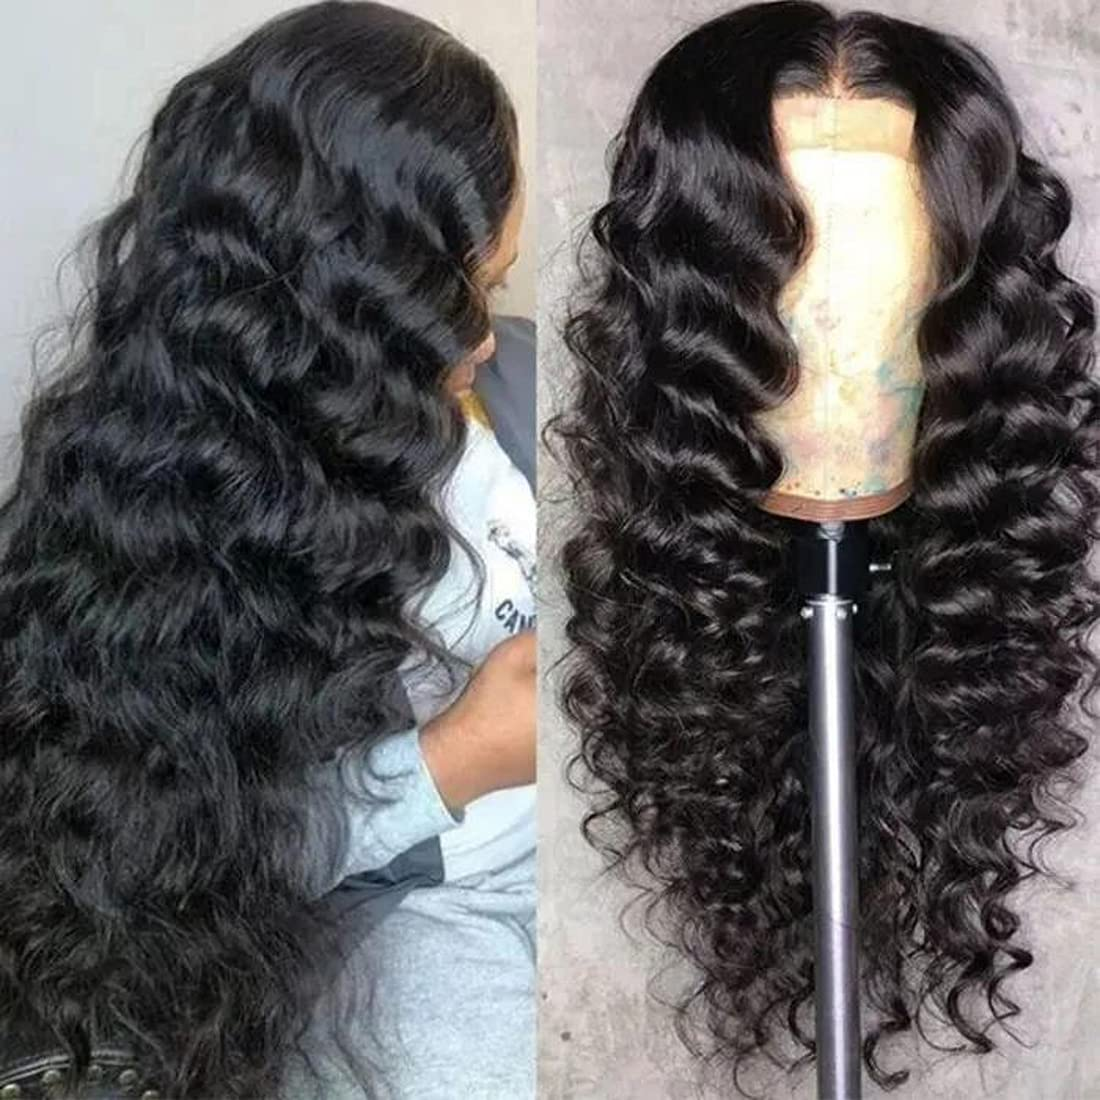 UNICE Wand Curl Body Wave 13x4 Human Lace Front Max 75% OFF Houston Mall Transparent Wigs